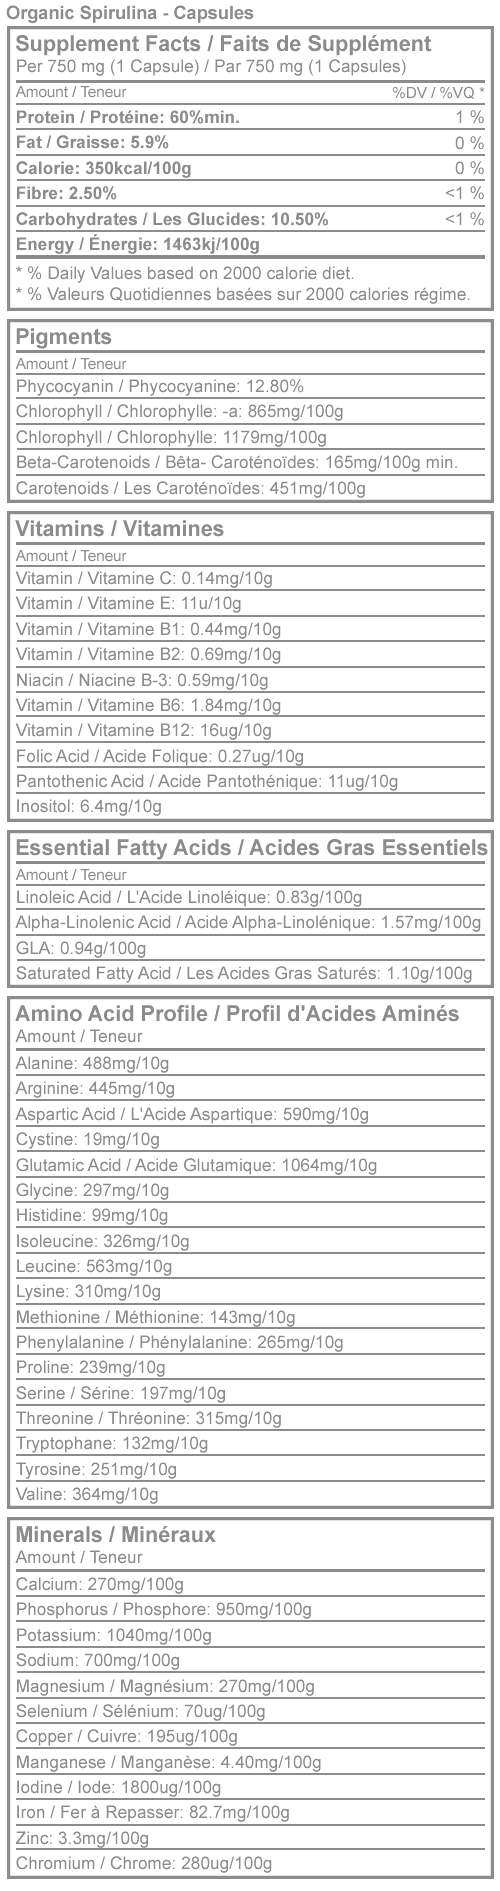 Spirulina Capsules Nutrition Facts